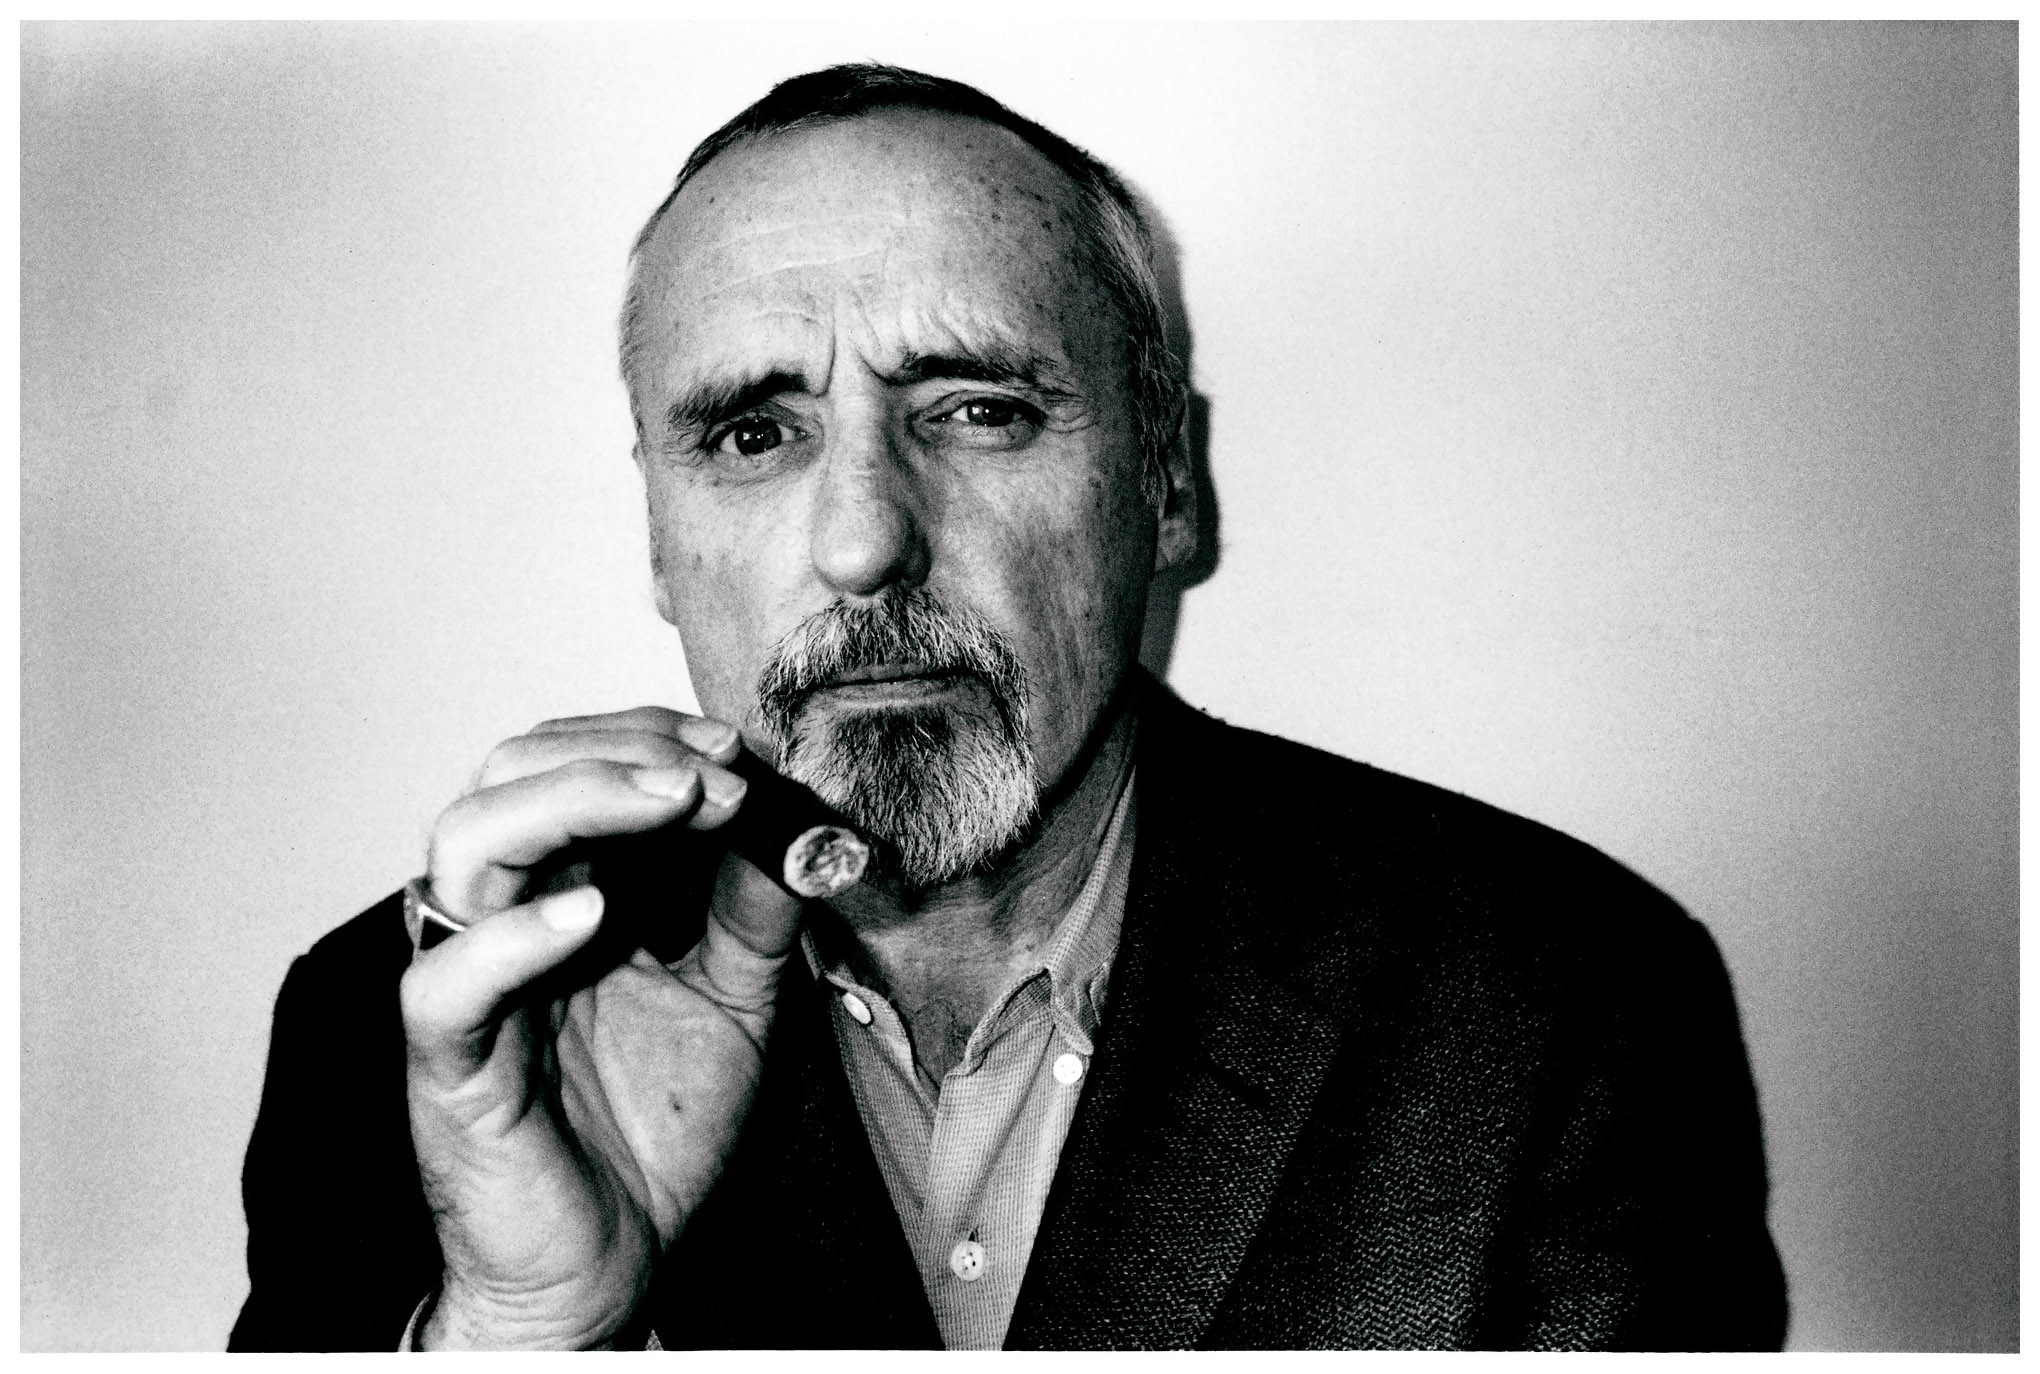 Dennis Hopper widescreen wallpapers